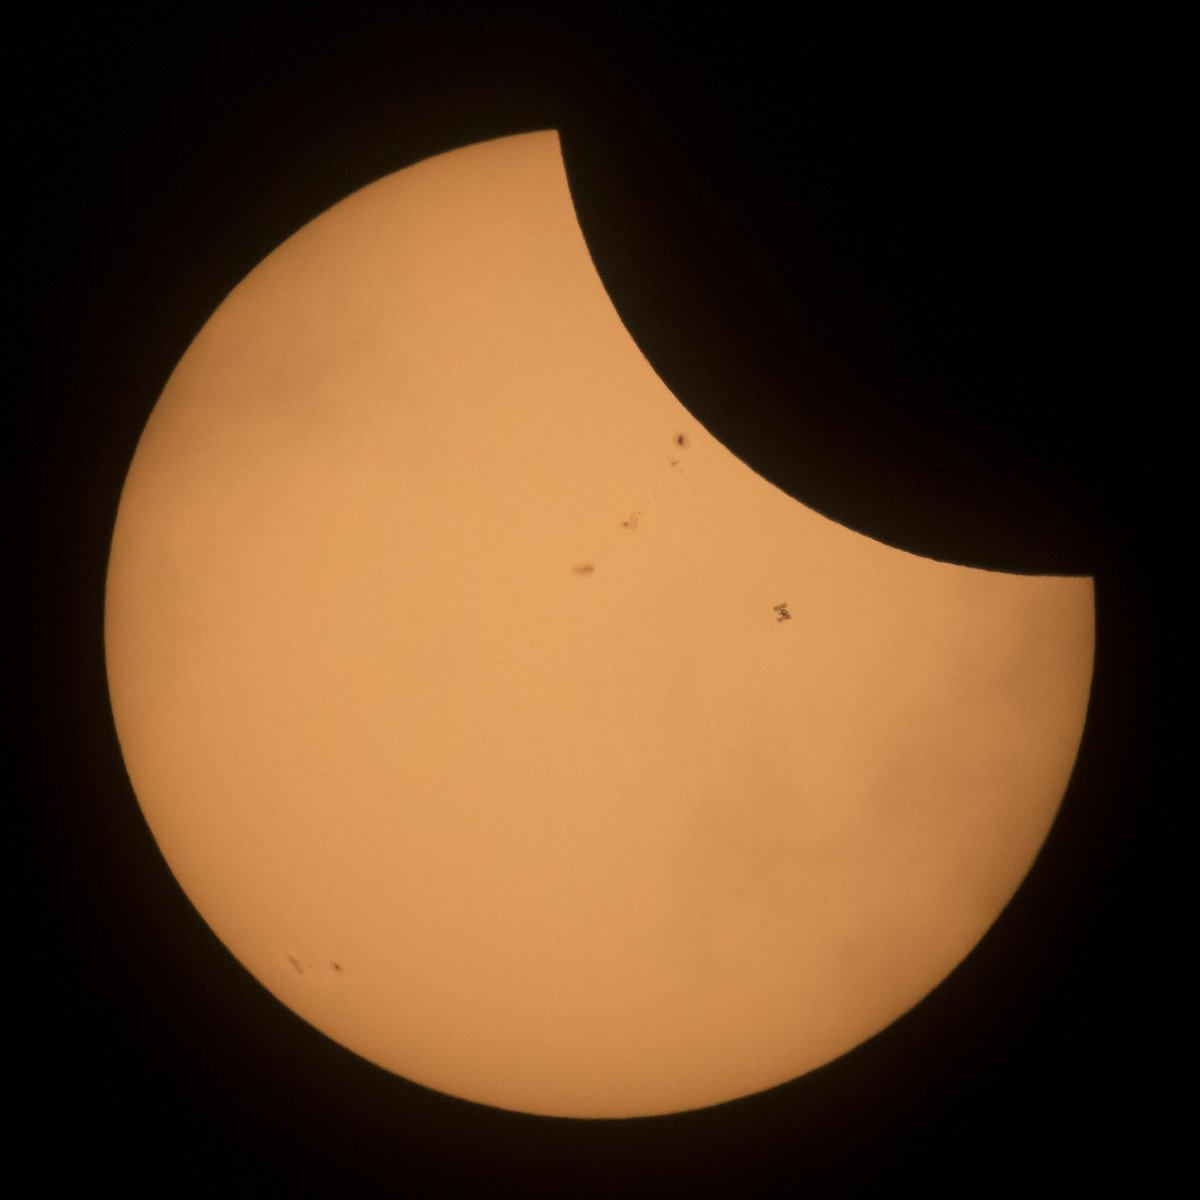 It's the moon, sunspots AND the station in front of the sun. @NASA photographer captures station transiting sun during #Eclipse2017